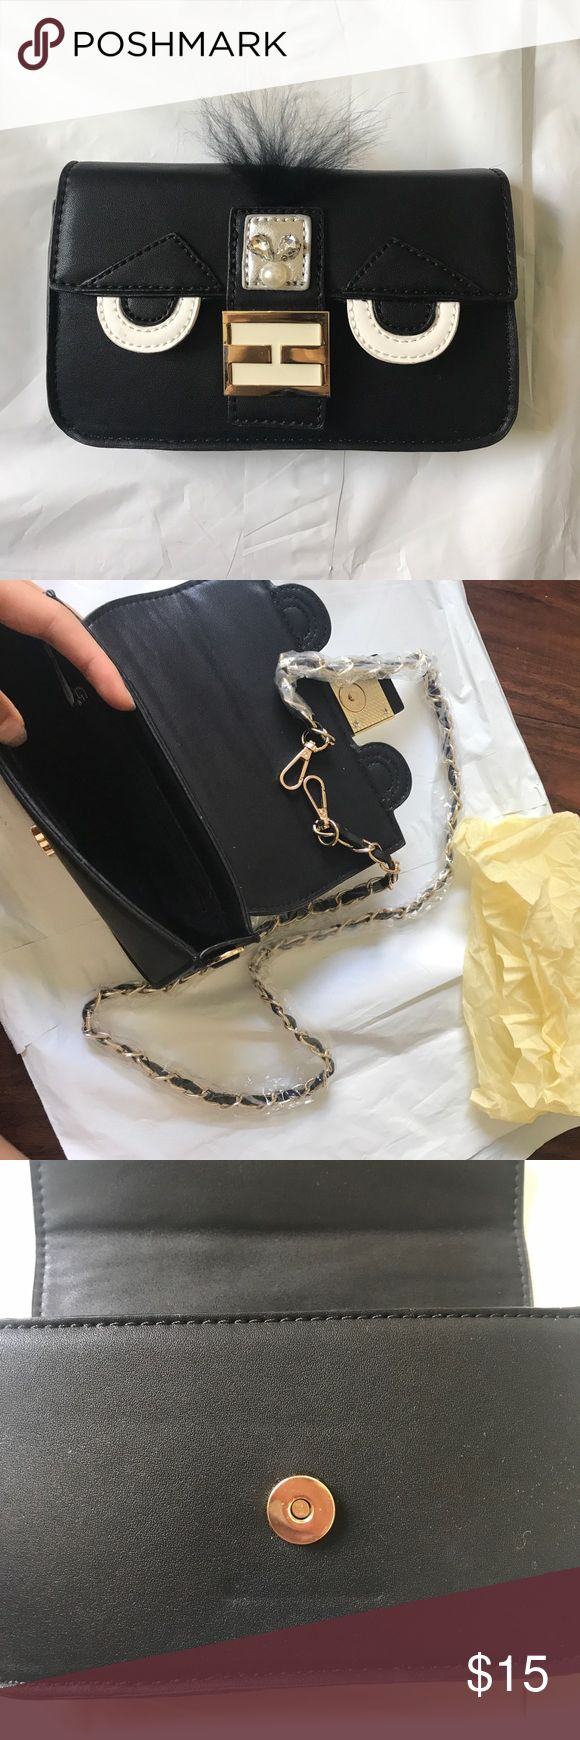 Melie Bianco Black Monster Crossbody Purse New never used! Super cute! Looks like a designer brand monster items. Chain crossbody that you can add on! Comes with dustbag Melie Bianco Bags Crossbody Bags